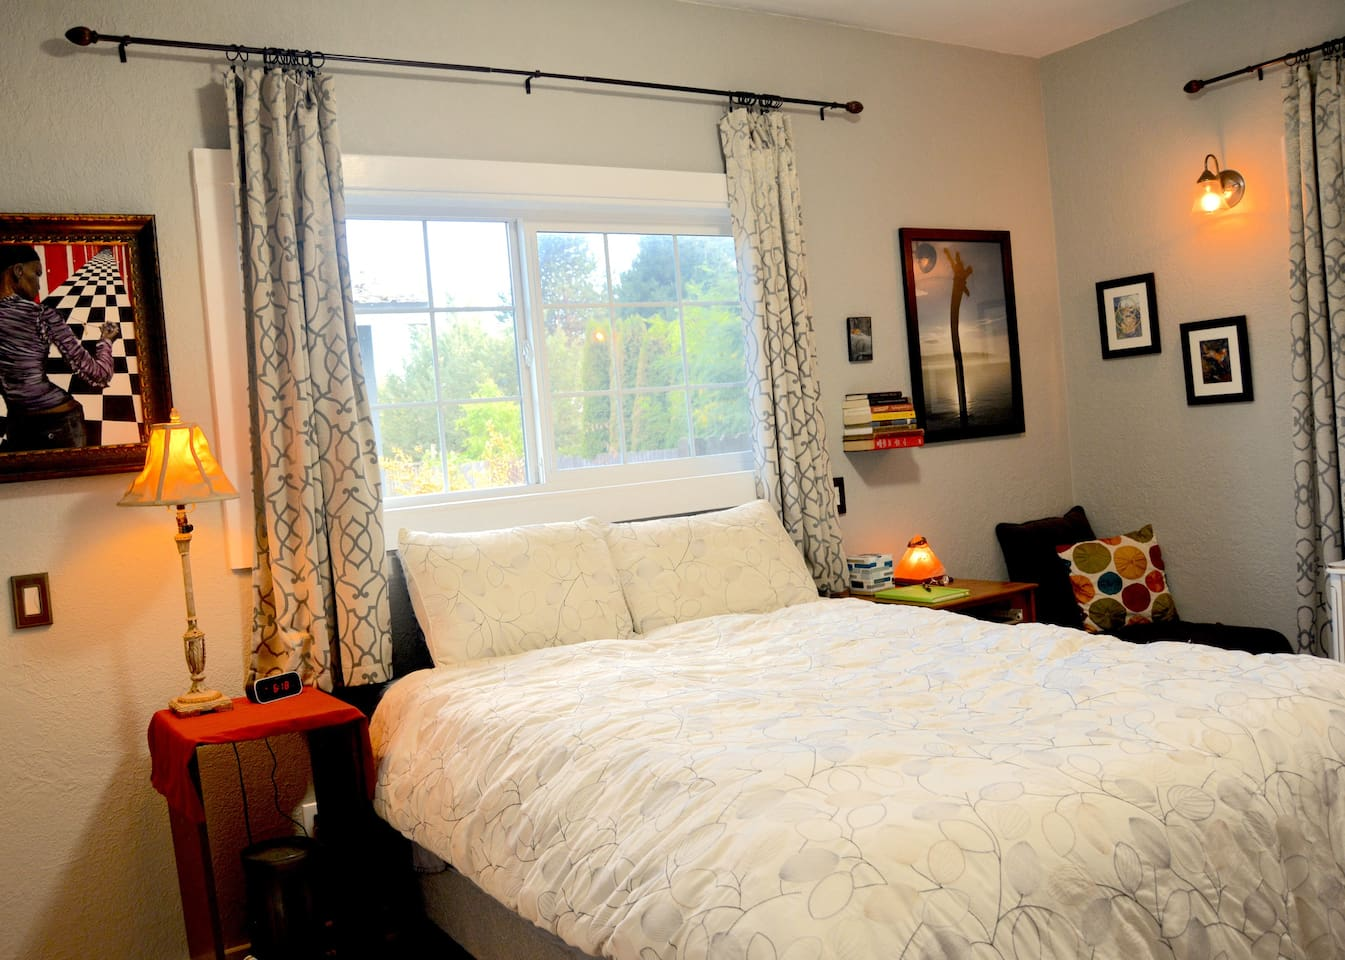 The room, with queen size soft bed and original artwork